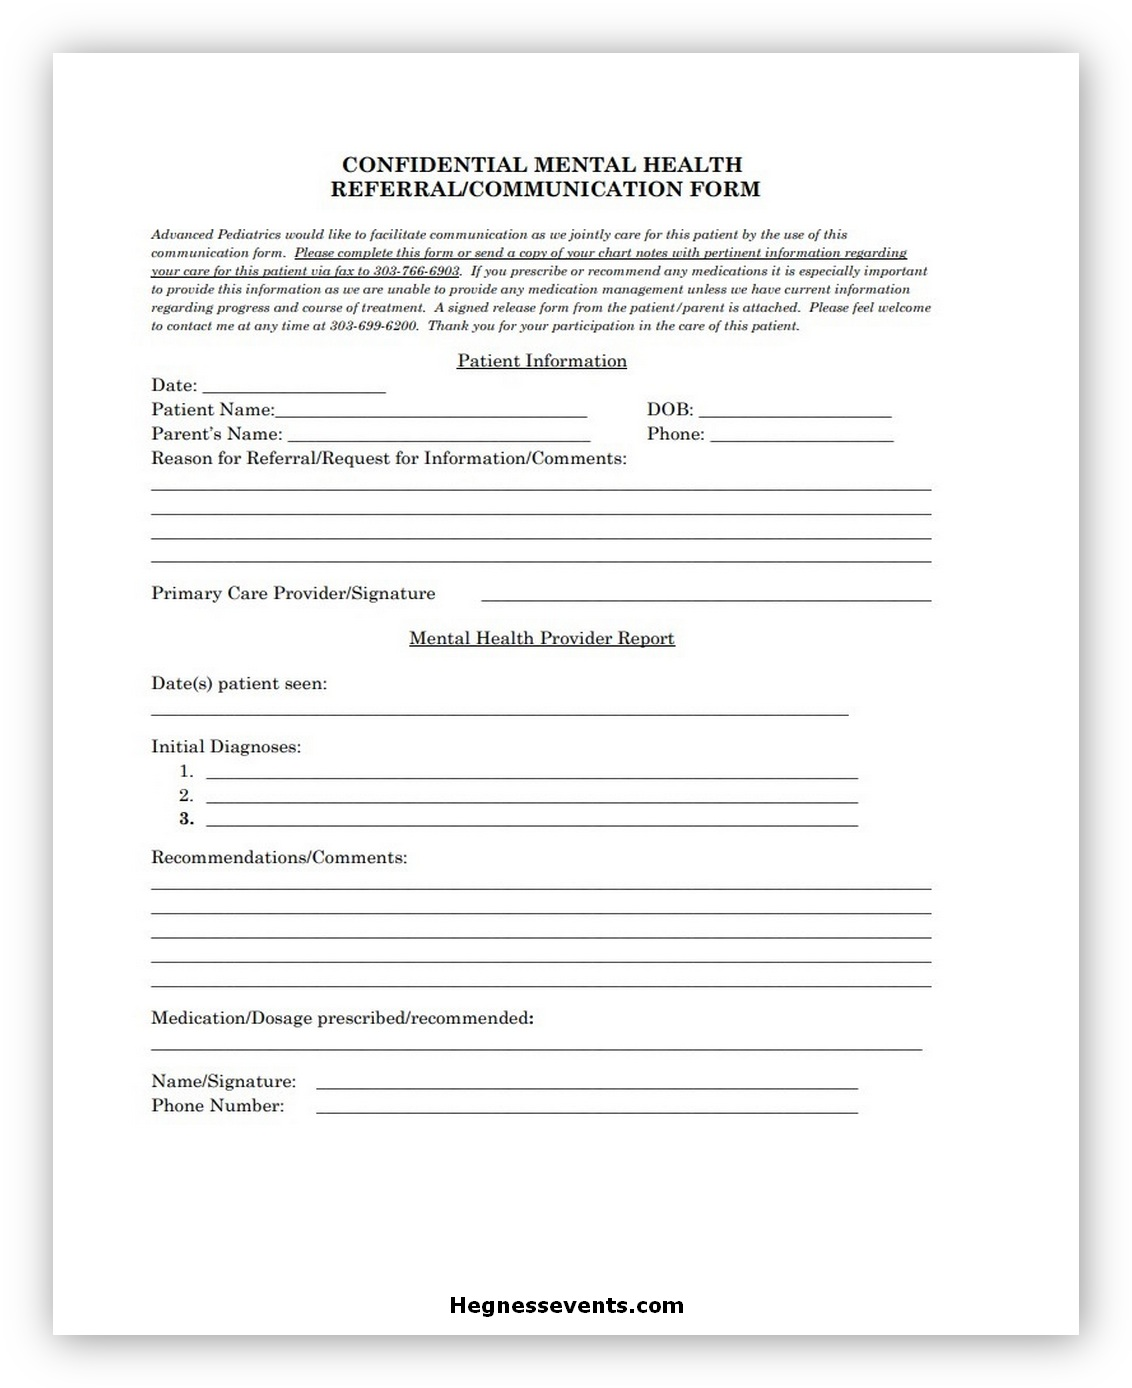 Health Communication Form